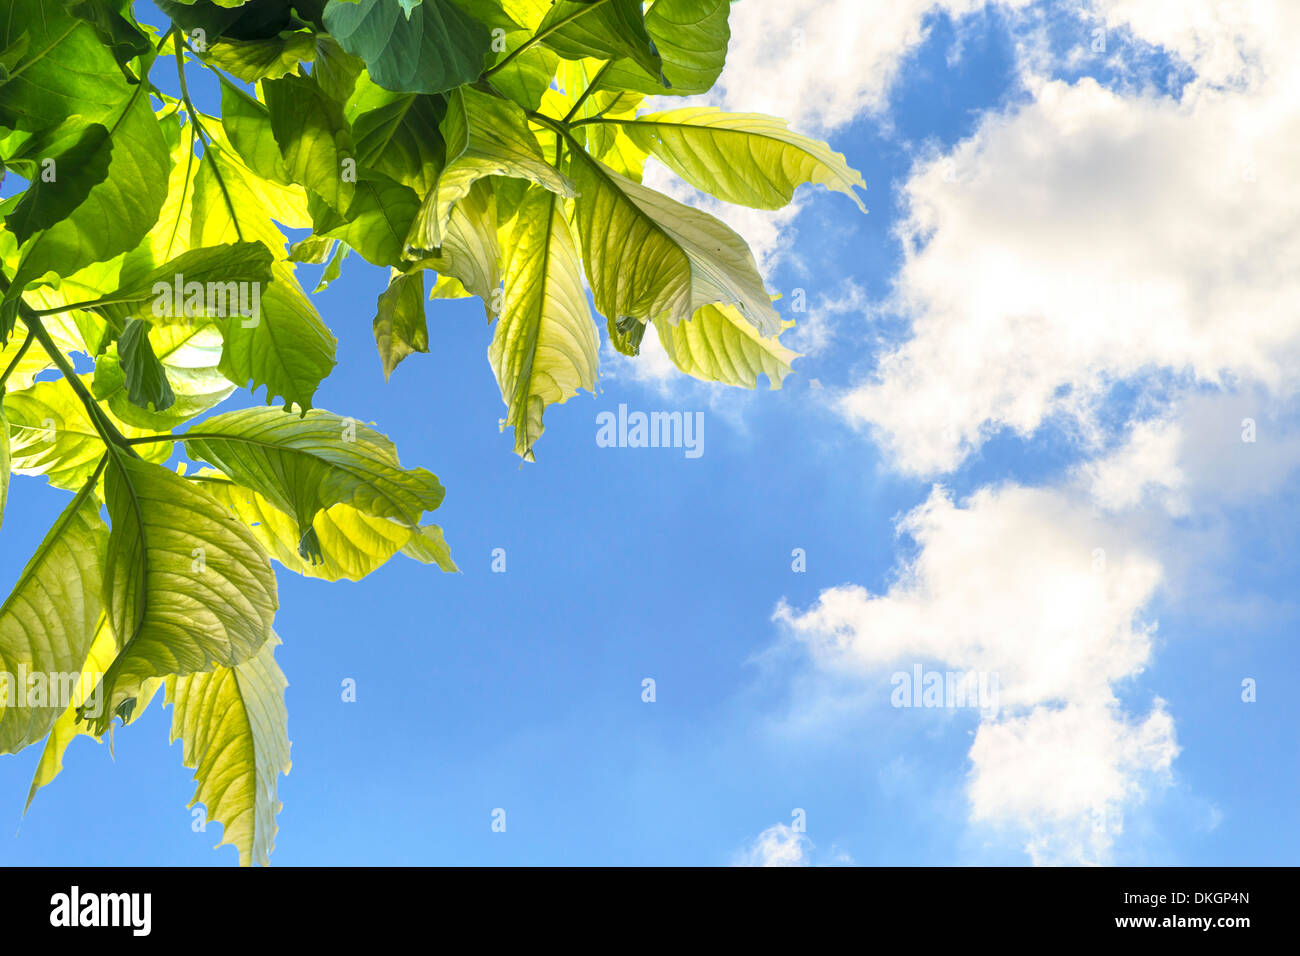 Leaves Of Garden Tree on blue sky and clound - Stock Image